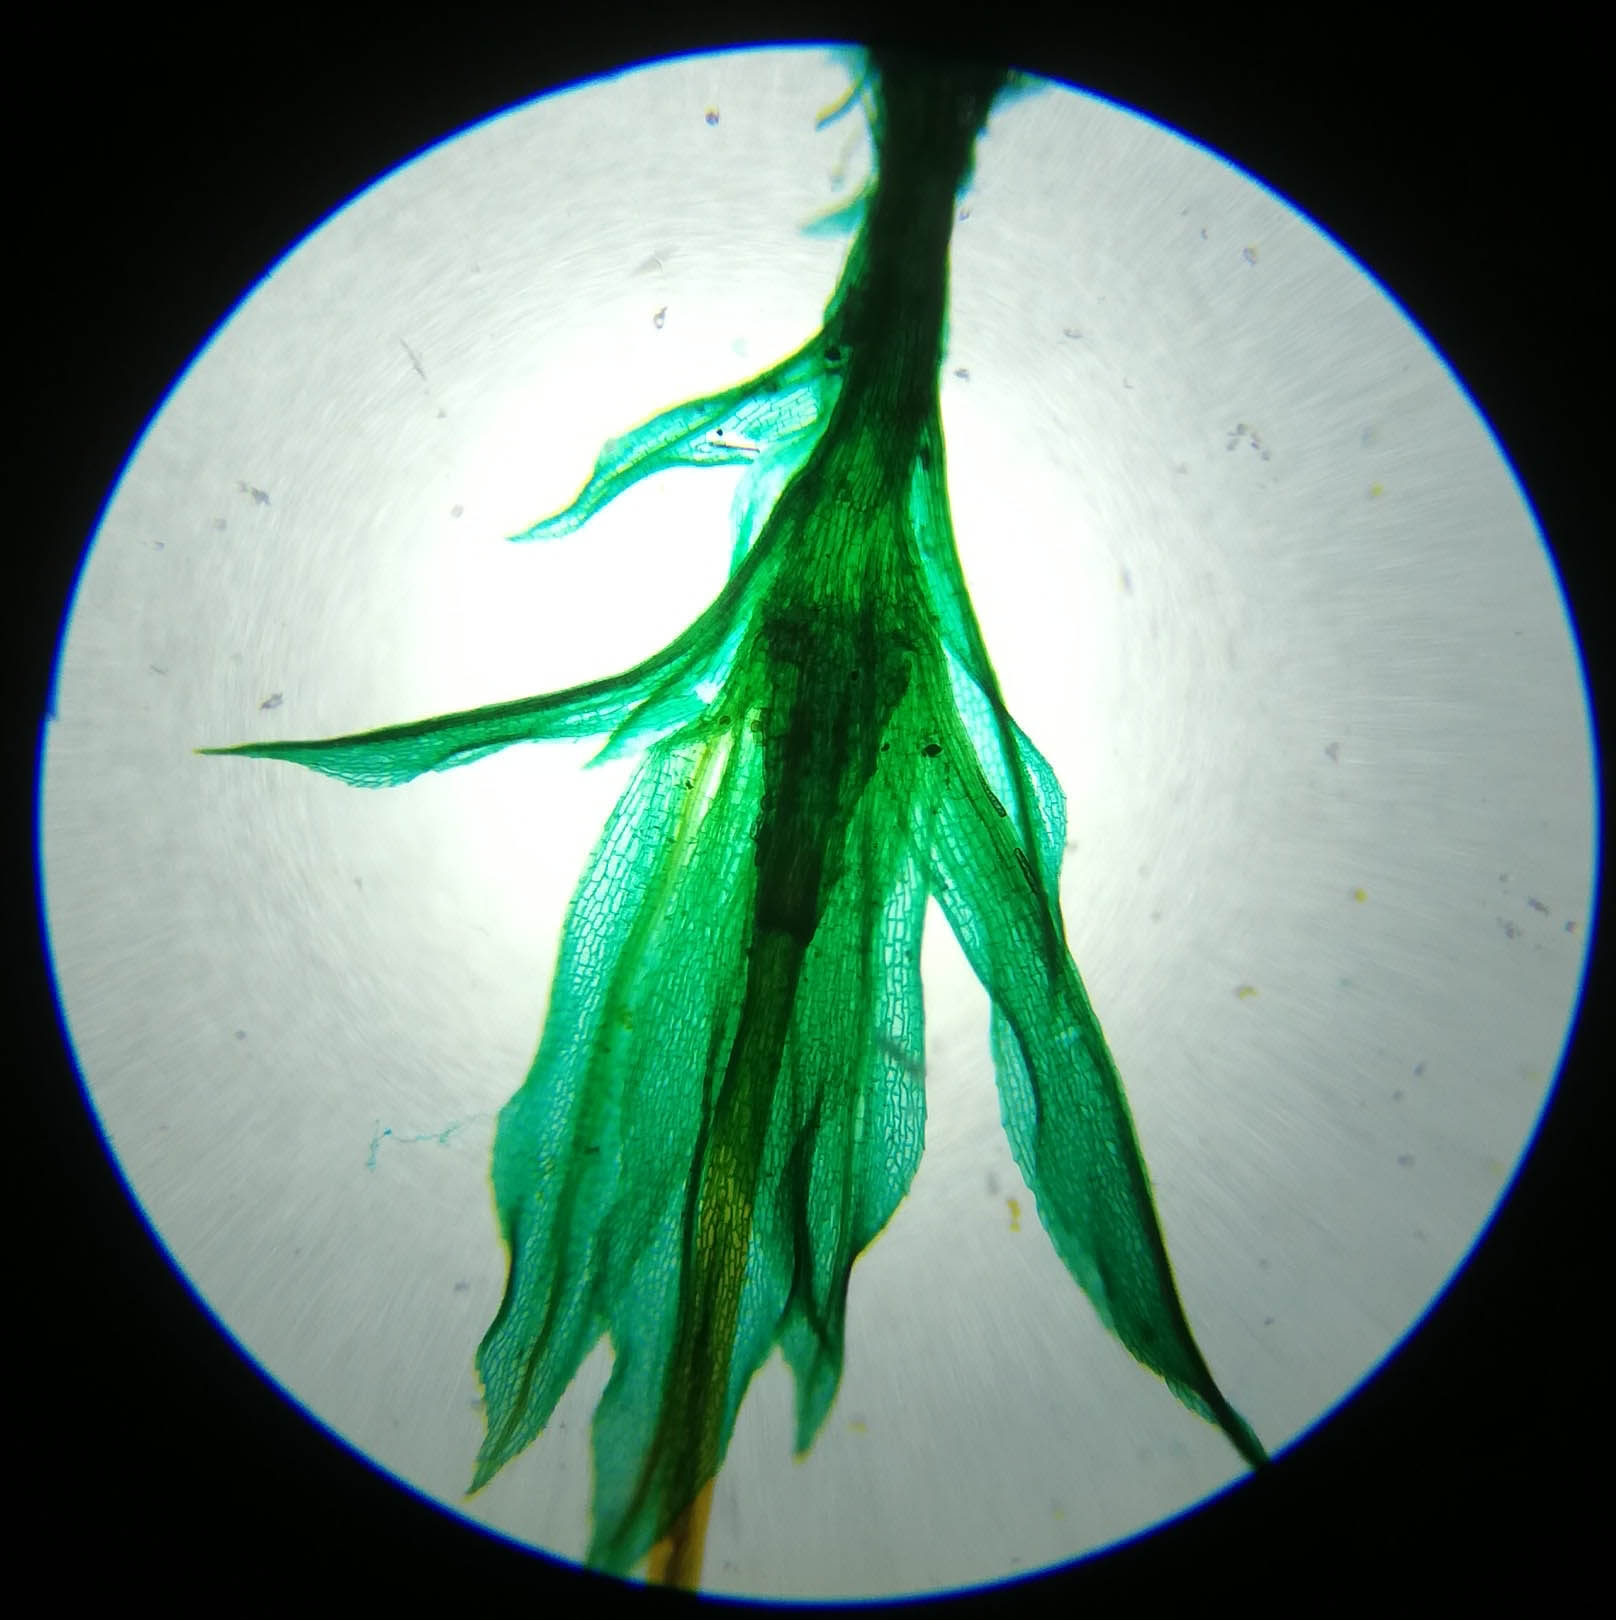 Fern Young Sporophyte W.M #1 - 40x magnification